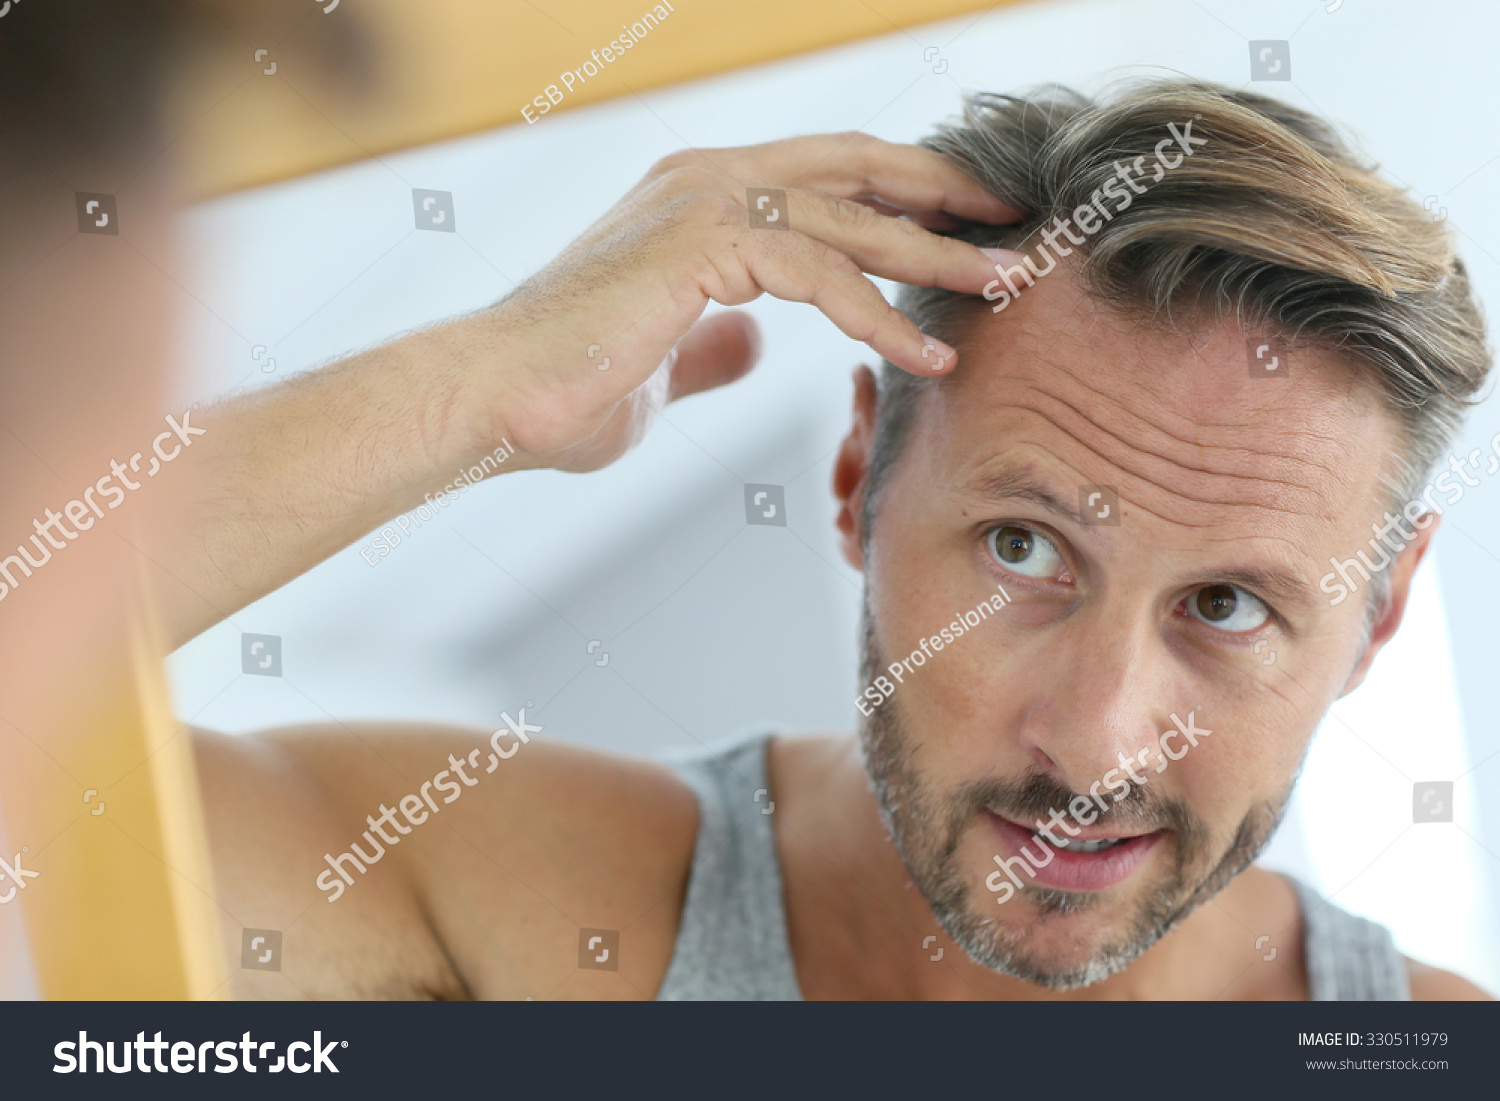 Middleaged Man Concerned By Hair Loss Stock Photo ...